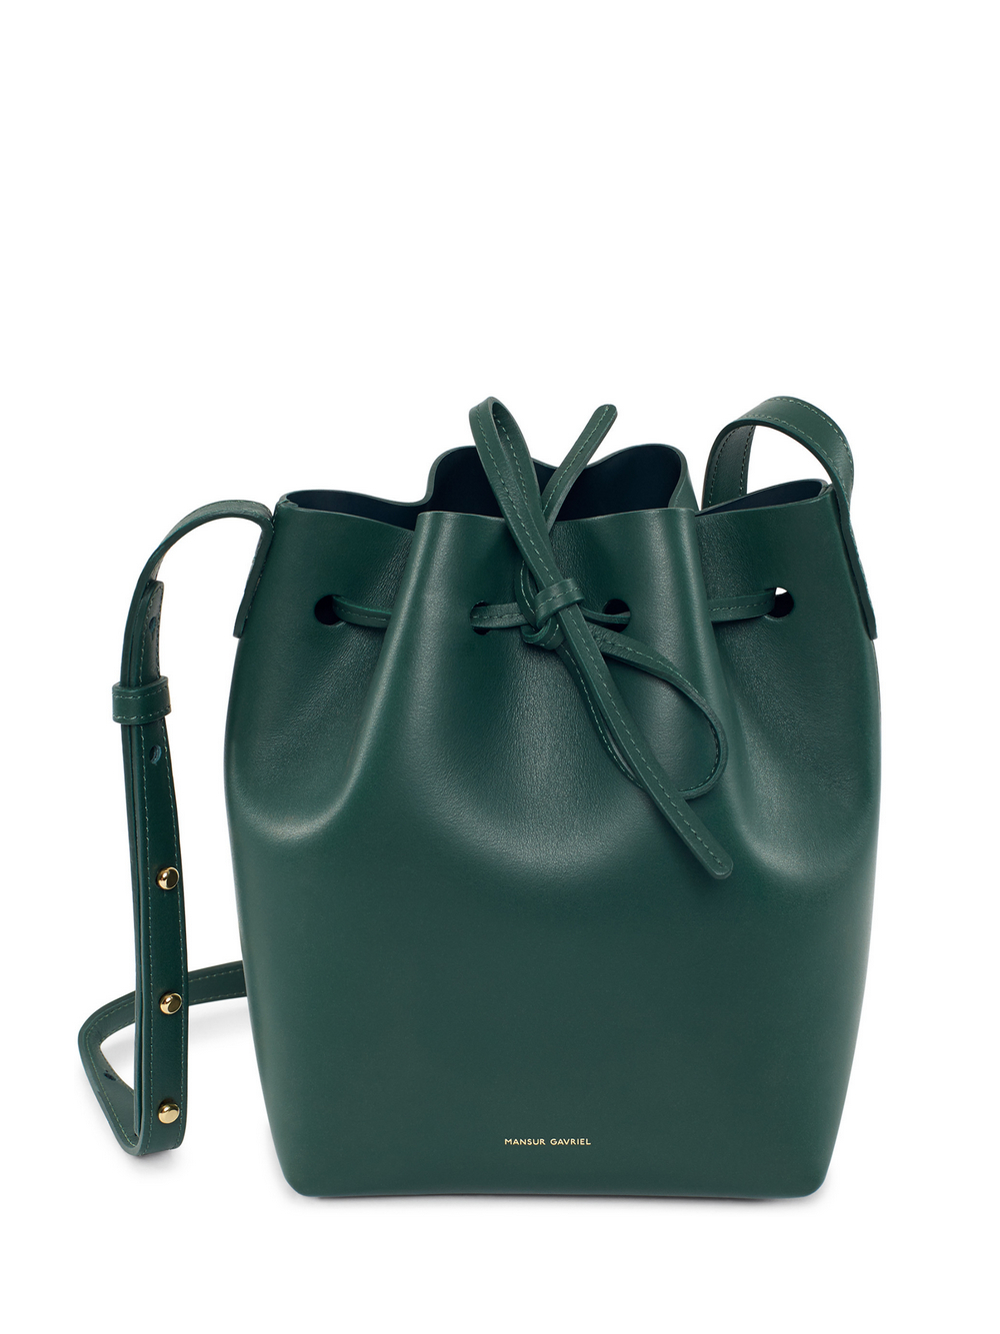 lyst mansur gavriel mini leather bucket bag in green. Black Bedroom Furniture Sets. Home Design Ideas